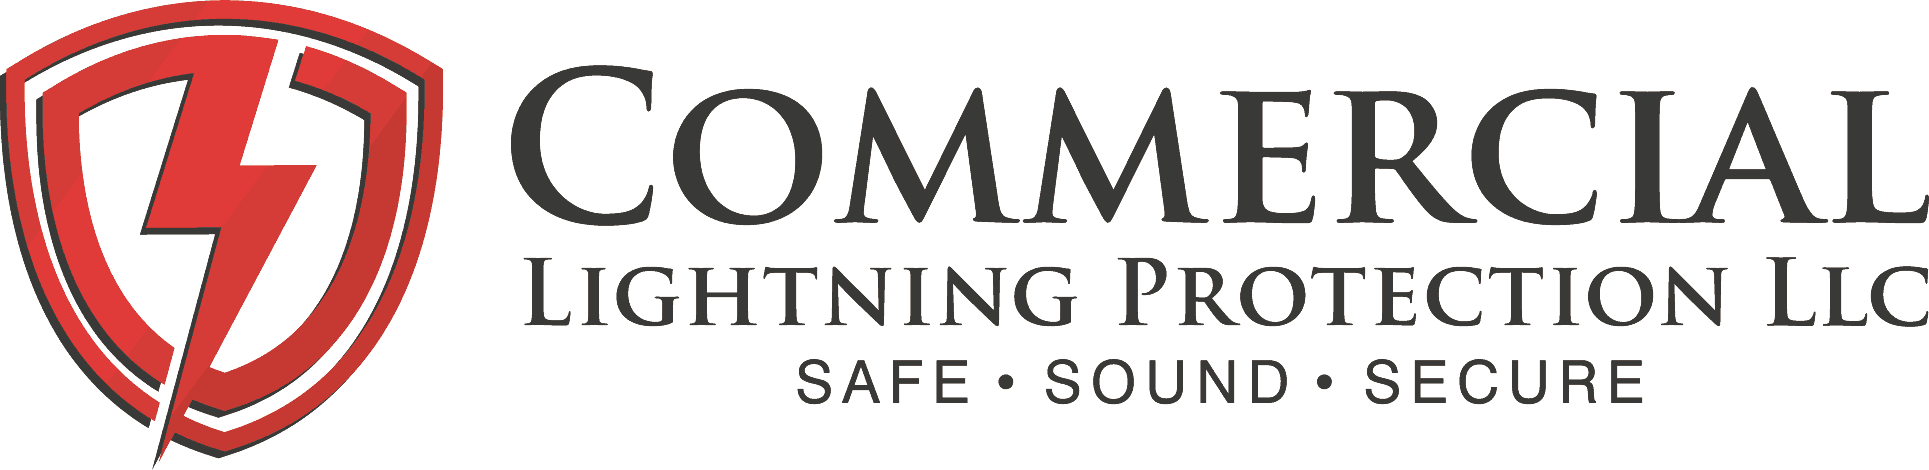 Commercial Lightning Protection logo